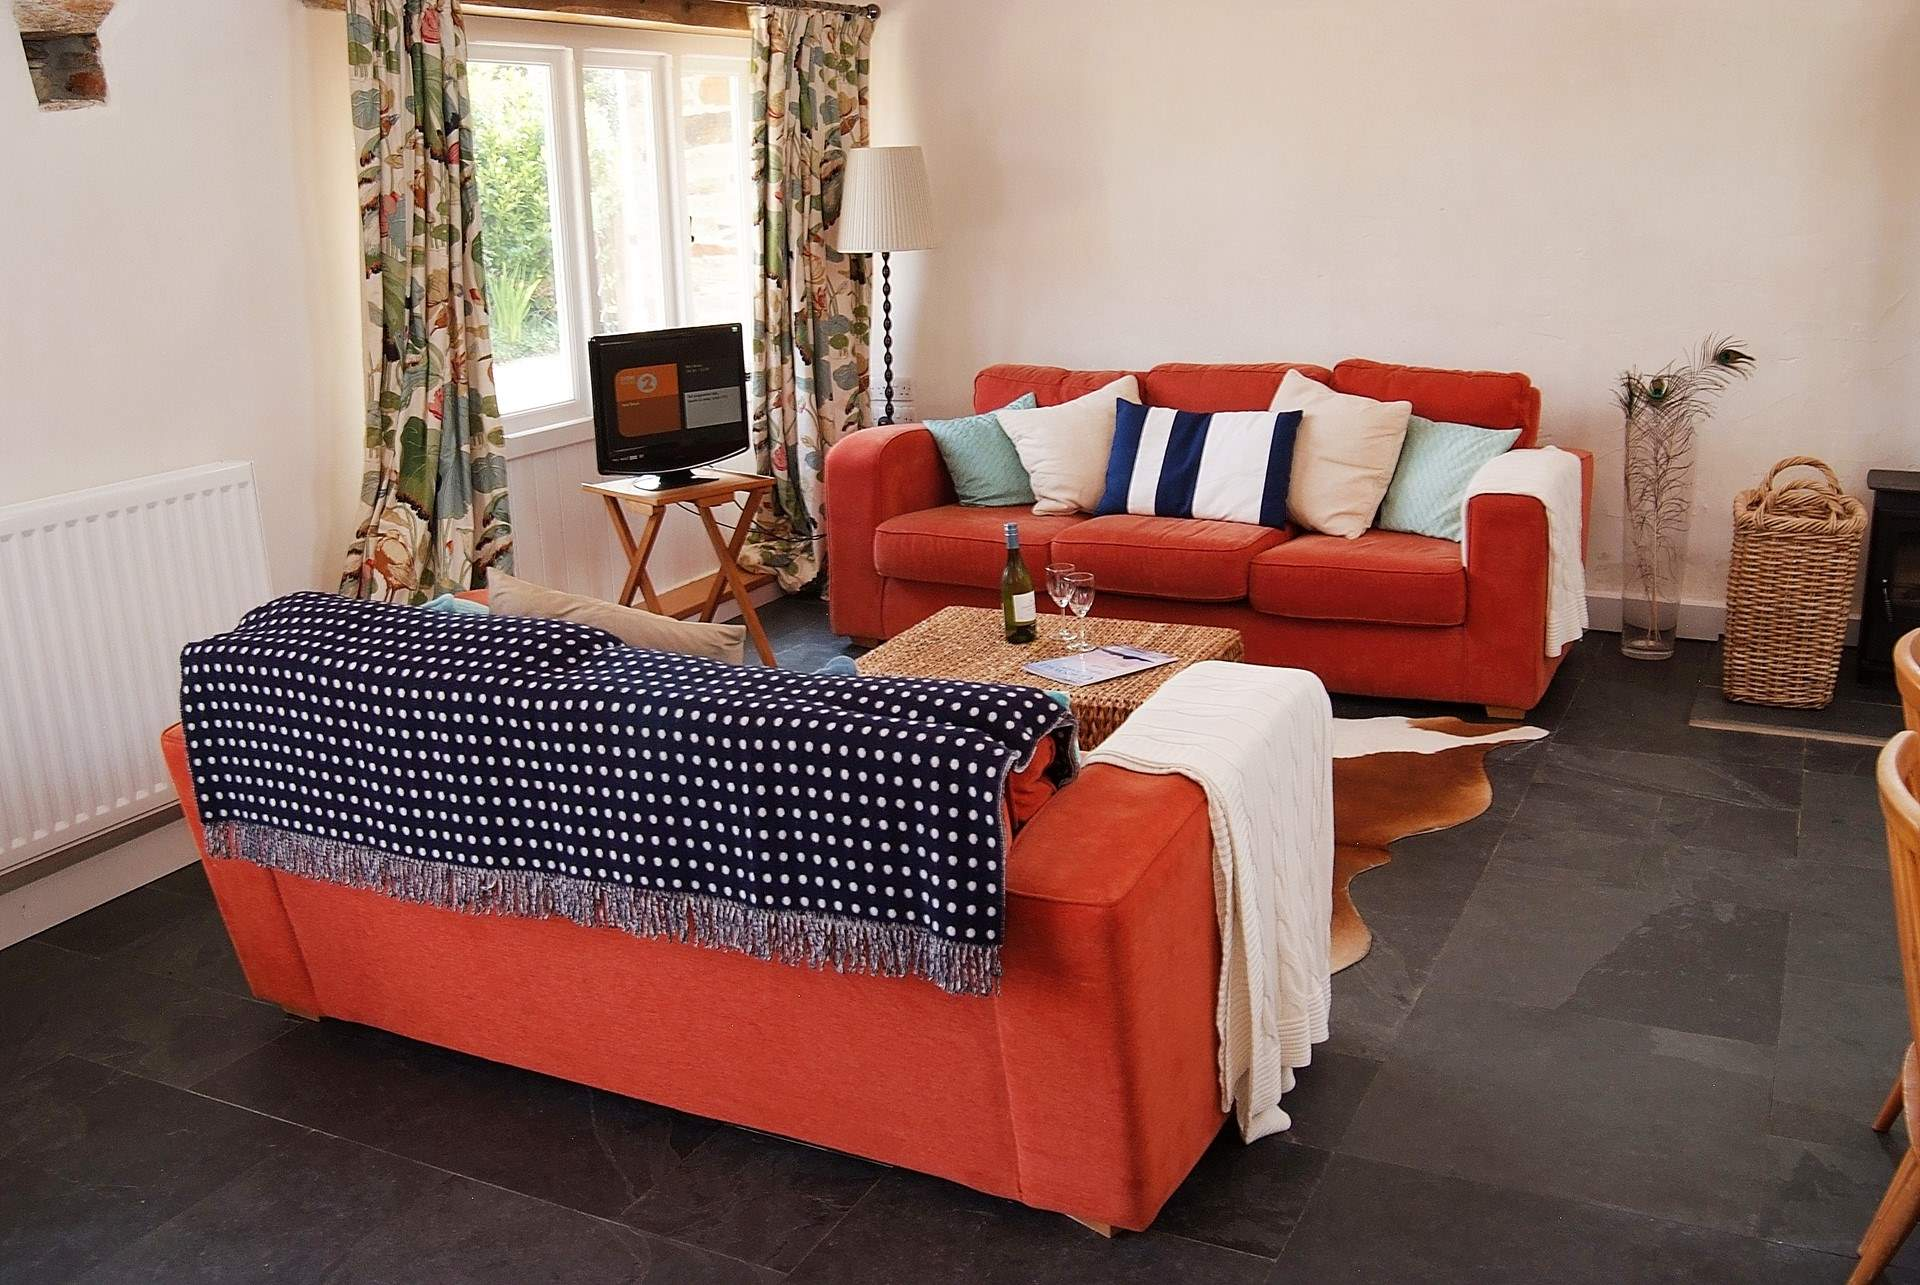 squashy sofas uk sofa bed chaise perth kiddlywink cottage, holiday cottage description - classic ...